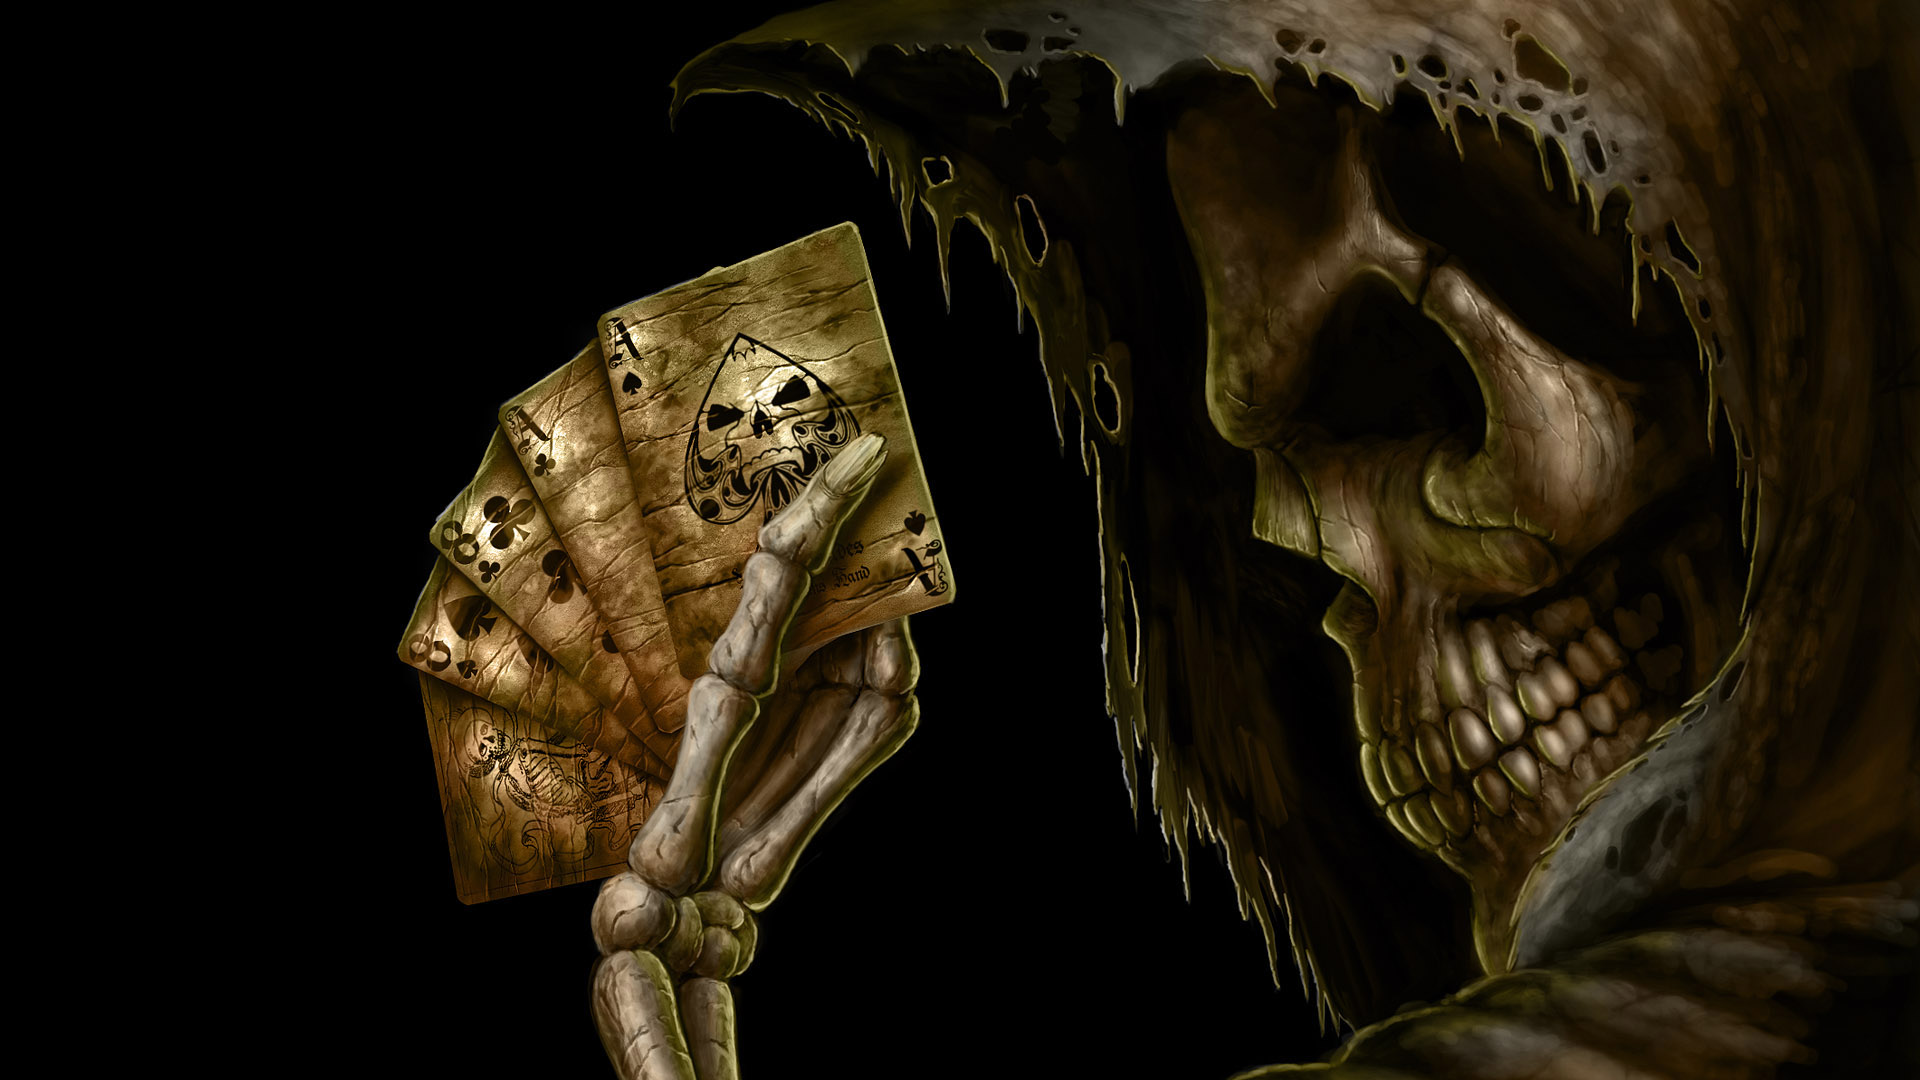 Dark - Grim Reaper  - Ace - M - Mayur - Skull - Death - Night - Dark - Card - Skul - Dead Man\'s Hand - Aces And Eights Wallpaper